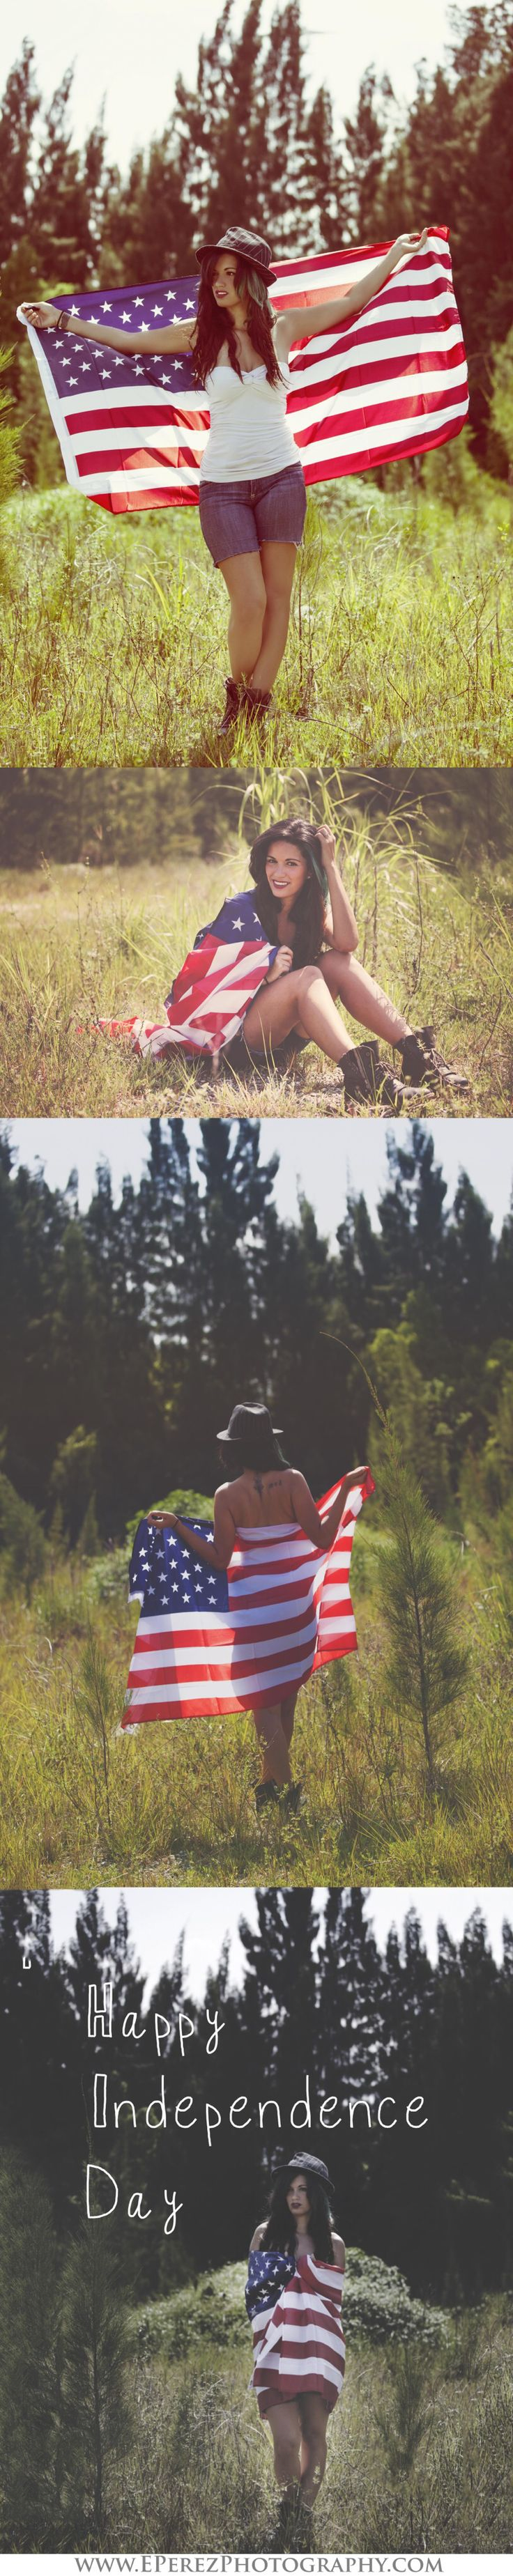 Independence Day Photography. Patriotic, American Flag, Photoshoot by E.Perez Photography